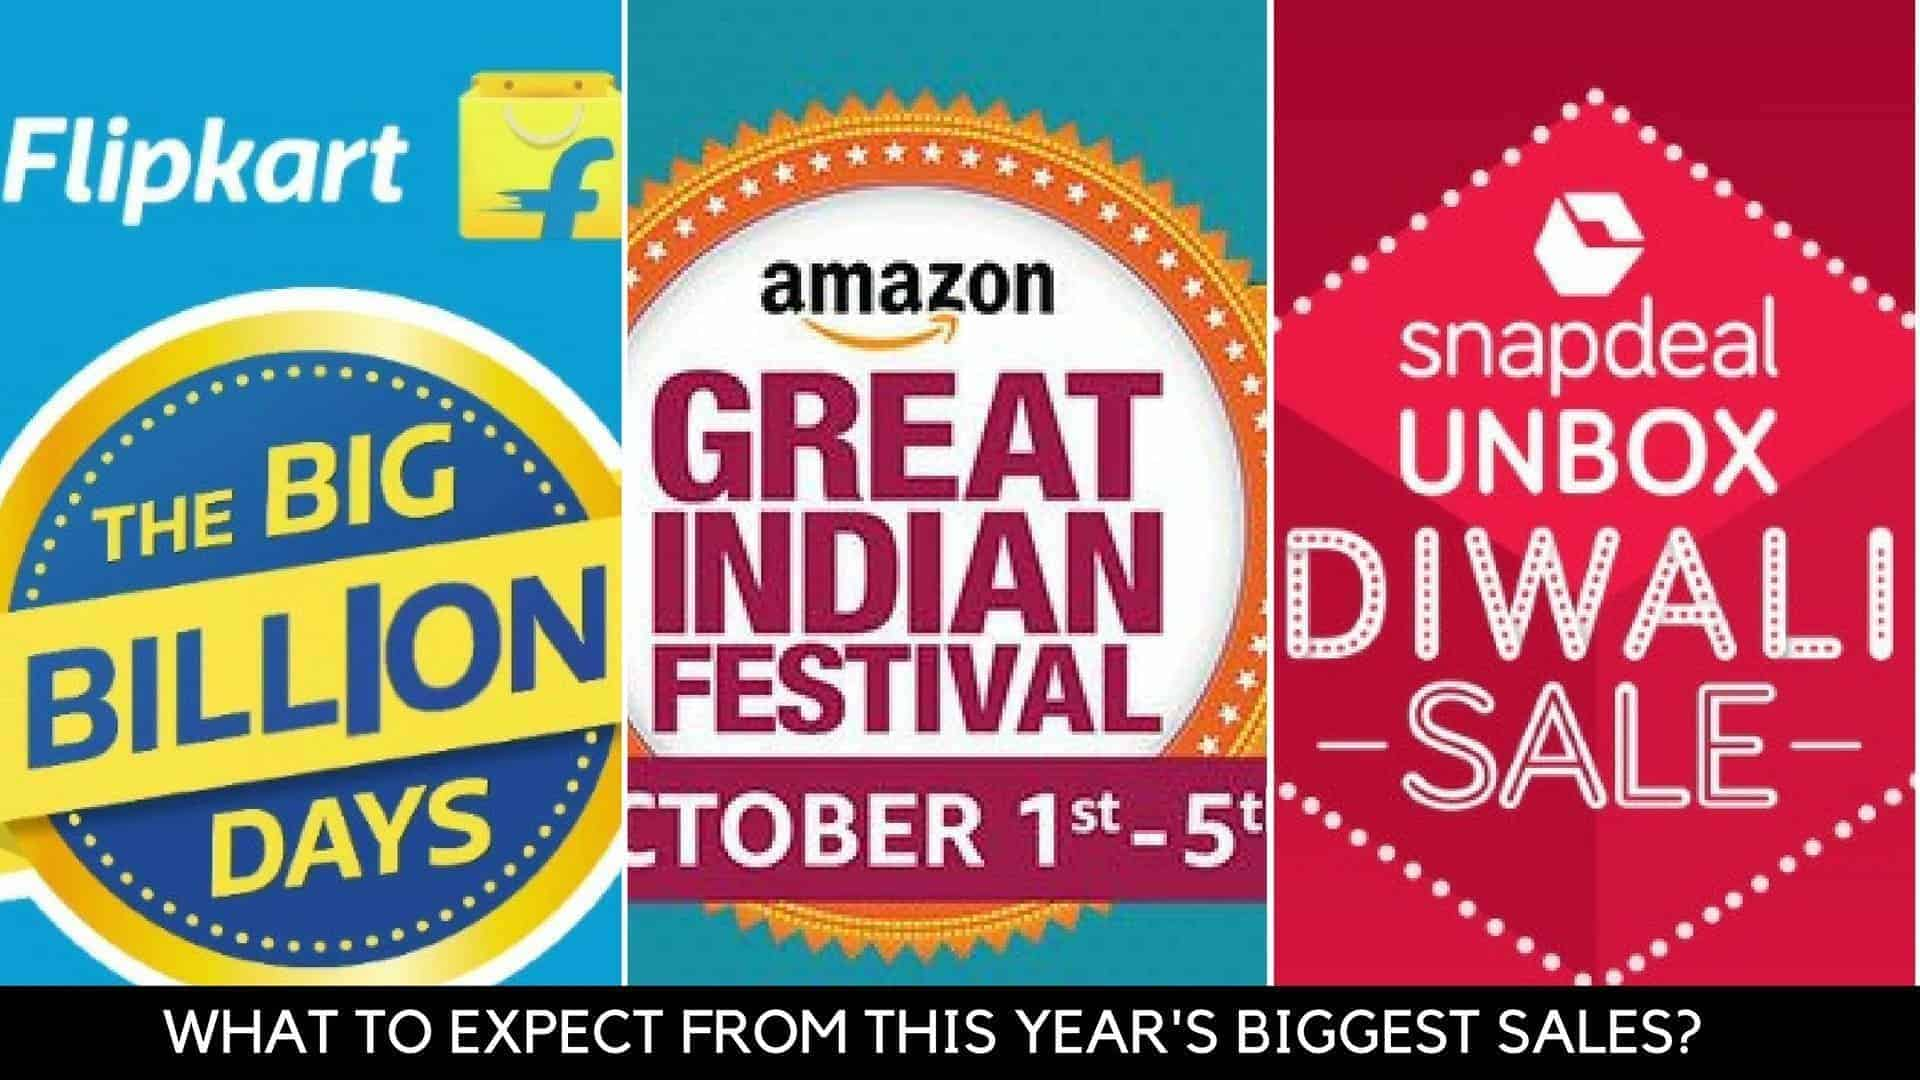 what to expect from flipkart big billion day 2016 amazon